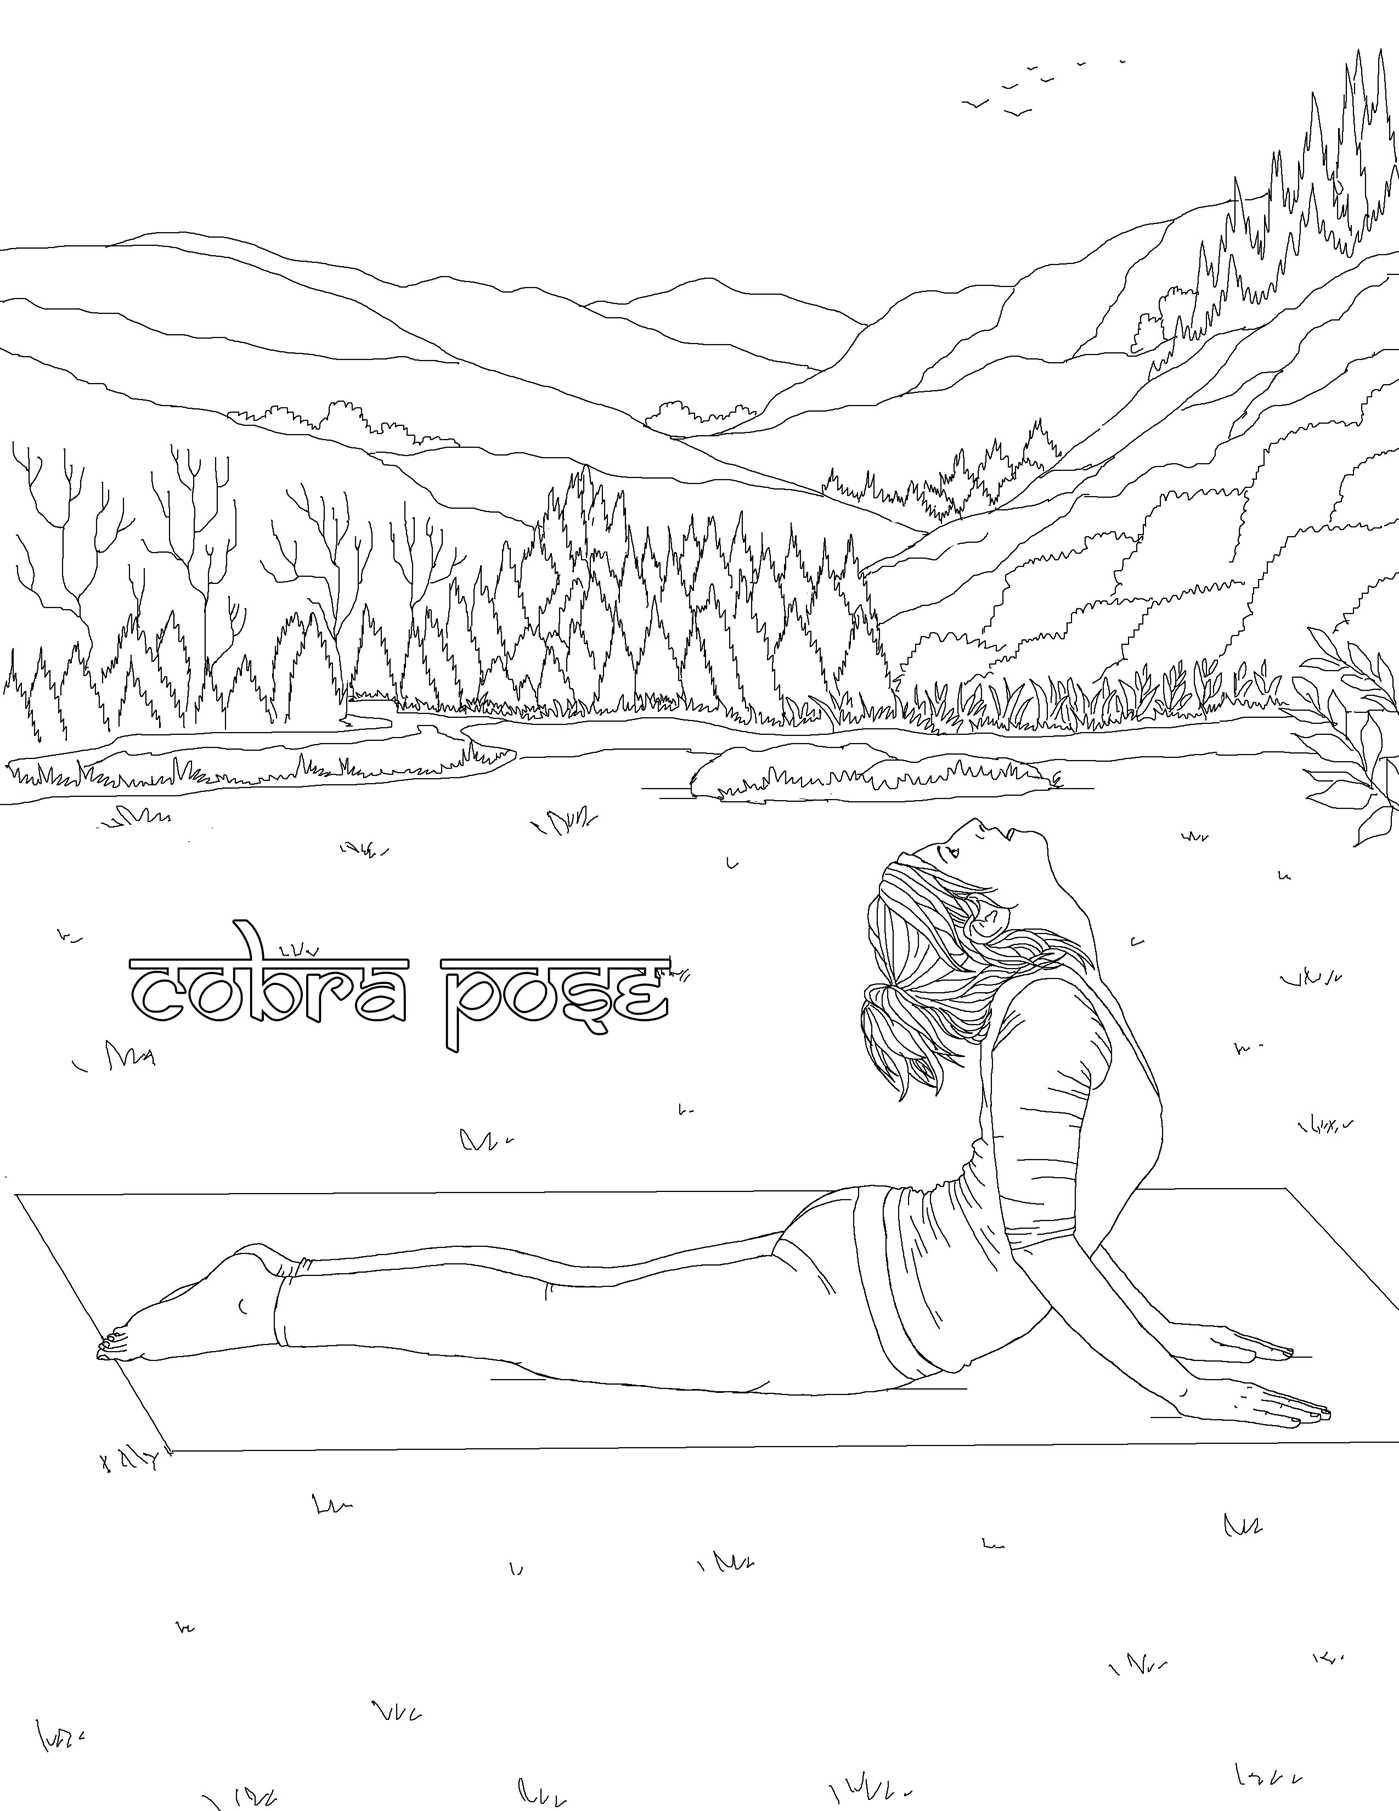 Publishers for adult coloring books -  The Yoga Poses Adult Coloring Book 9781682611302 In02